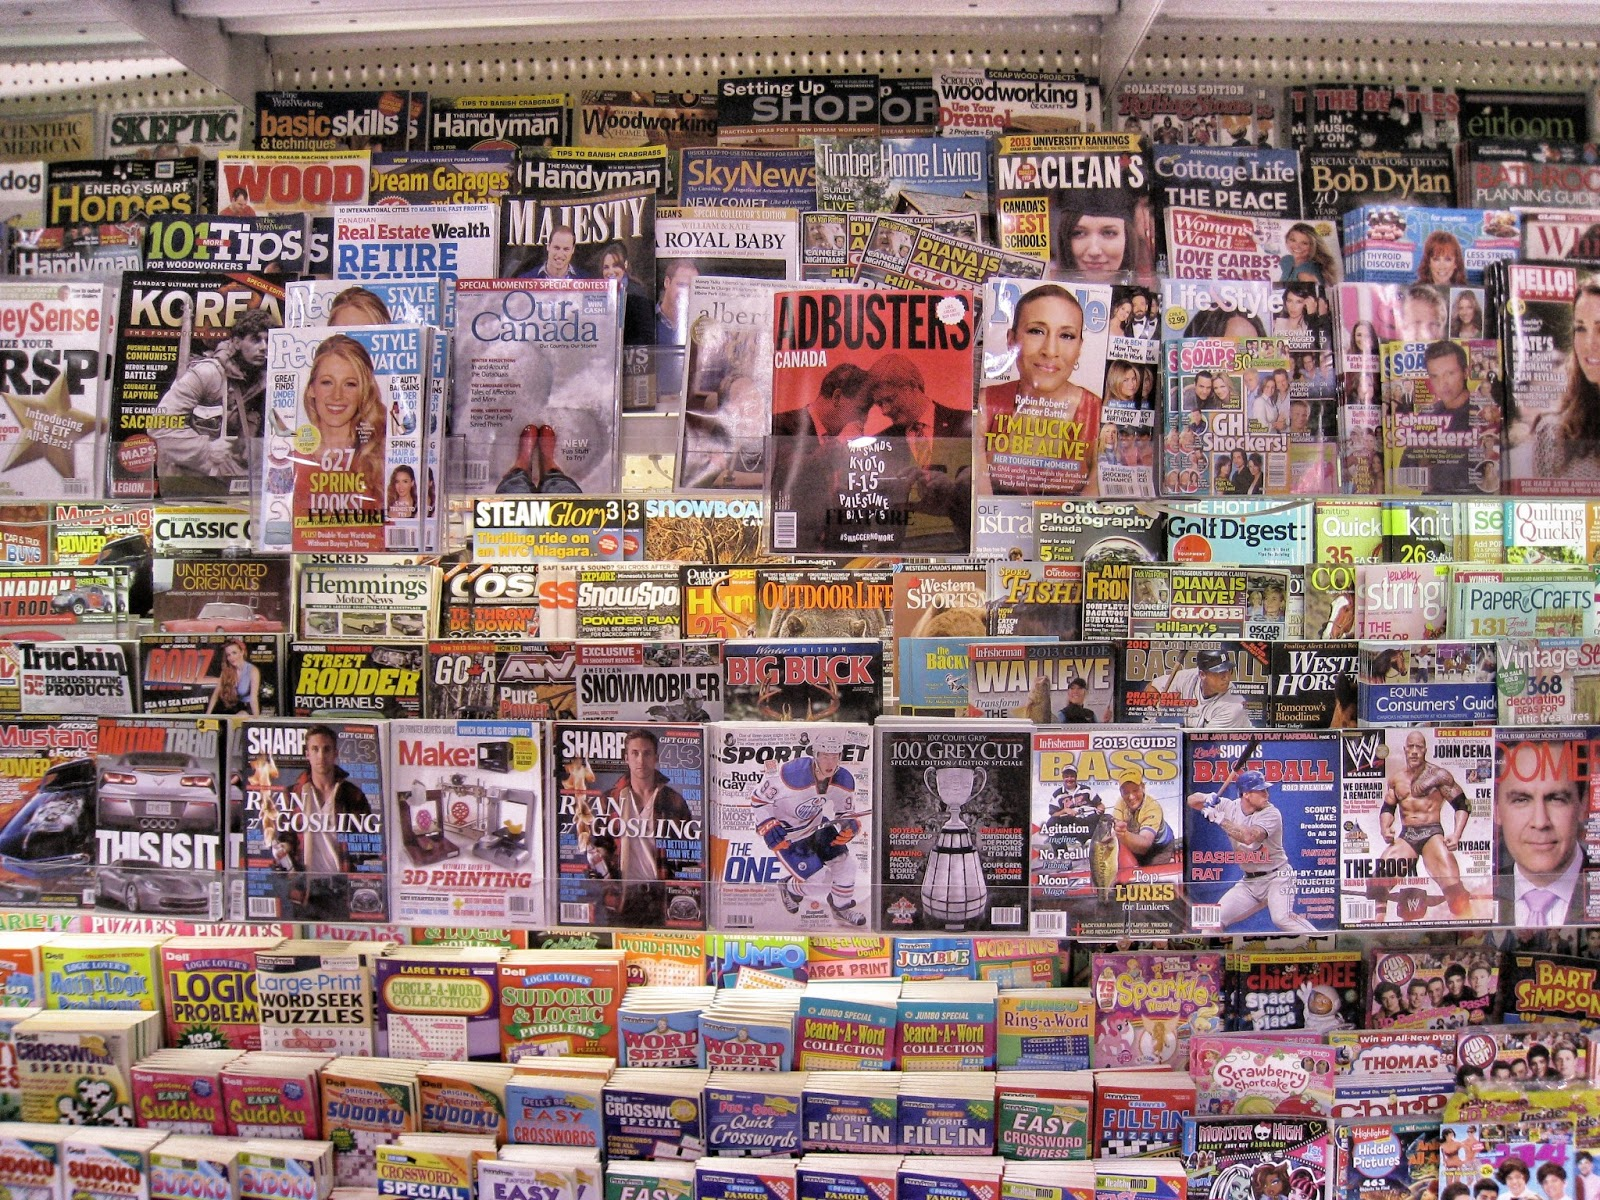 David Steinlicht Magazine rack in a Canadian grocery store 1600x1200